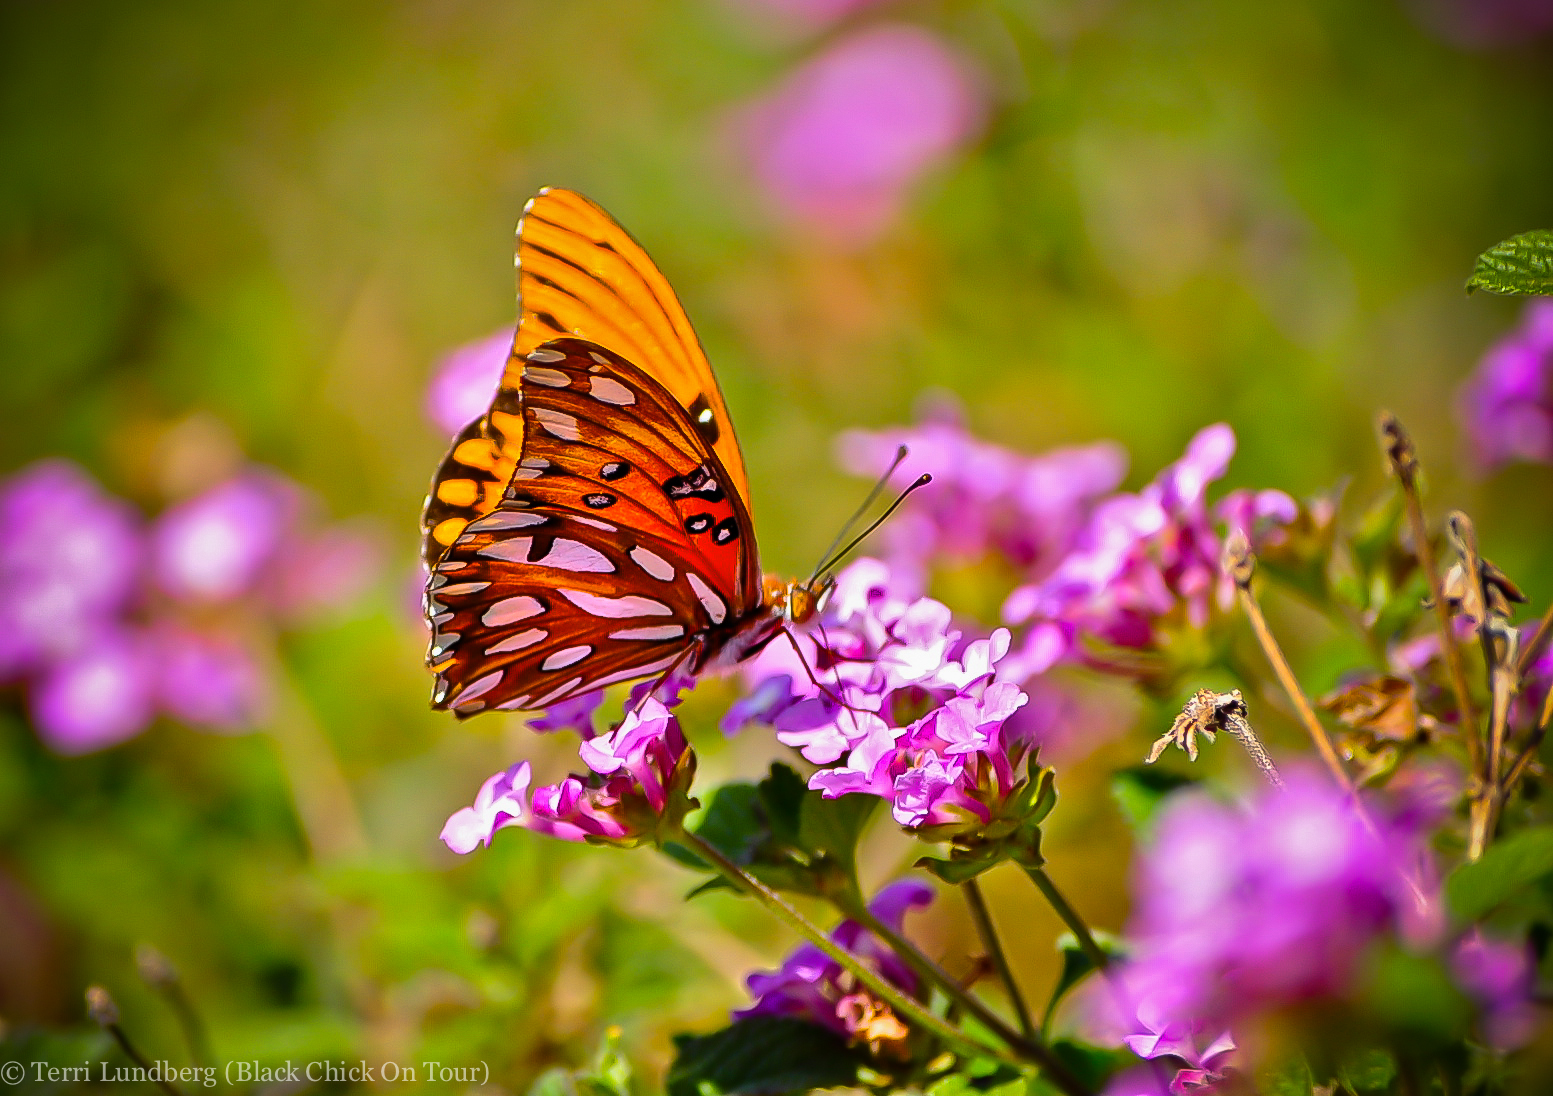 Butterfly on Pink Flowers - Black Chick On Tour